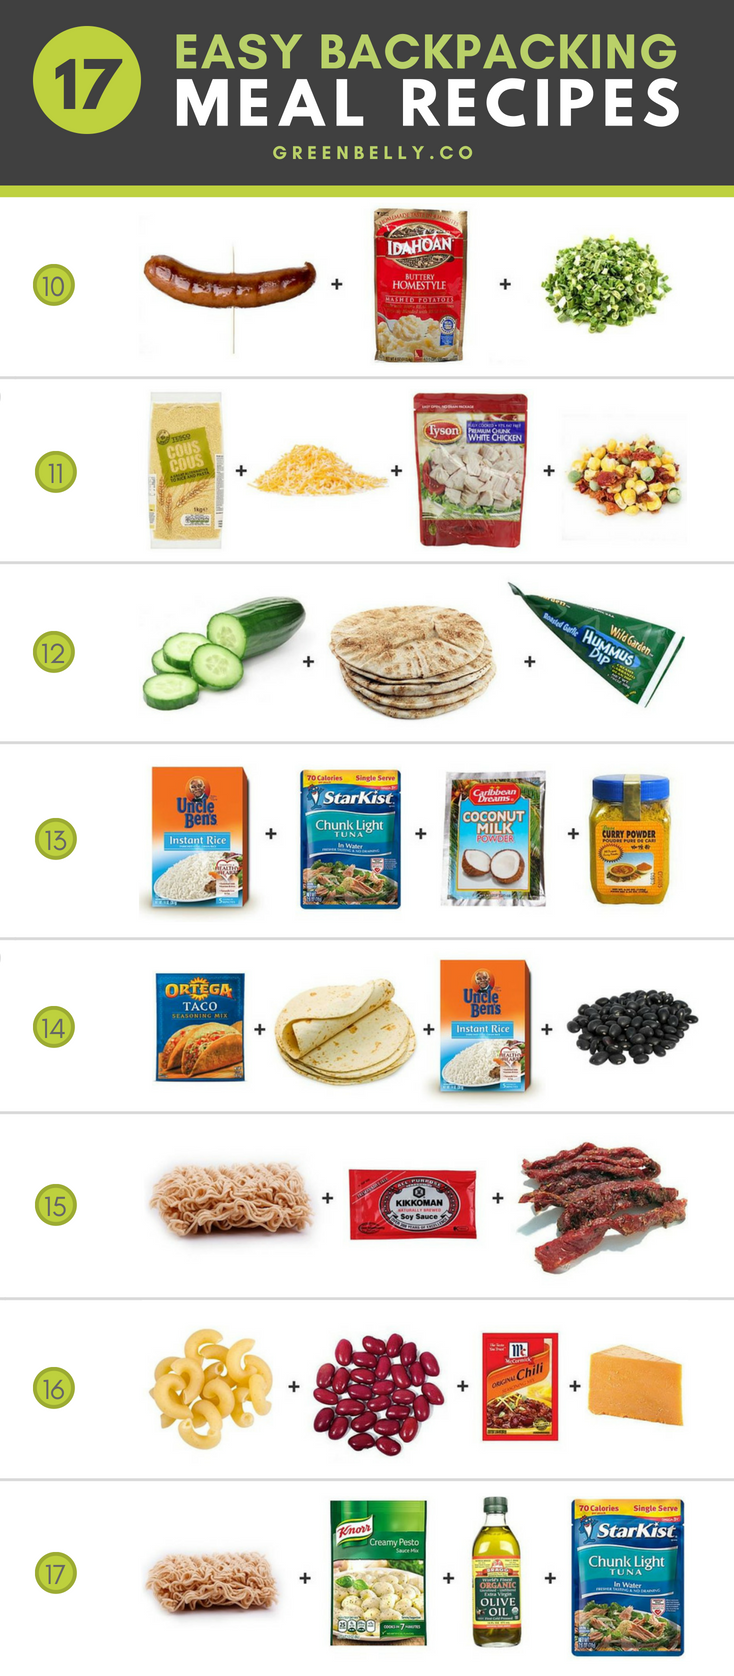 17 Simple Backpacking Meal Recipes with 4 Ingredients or Less images